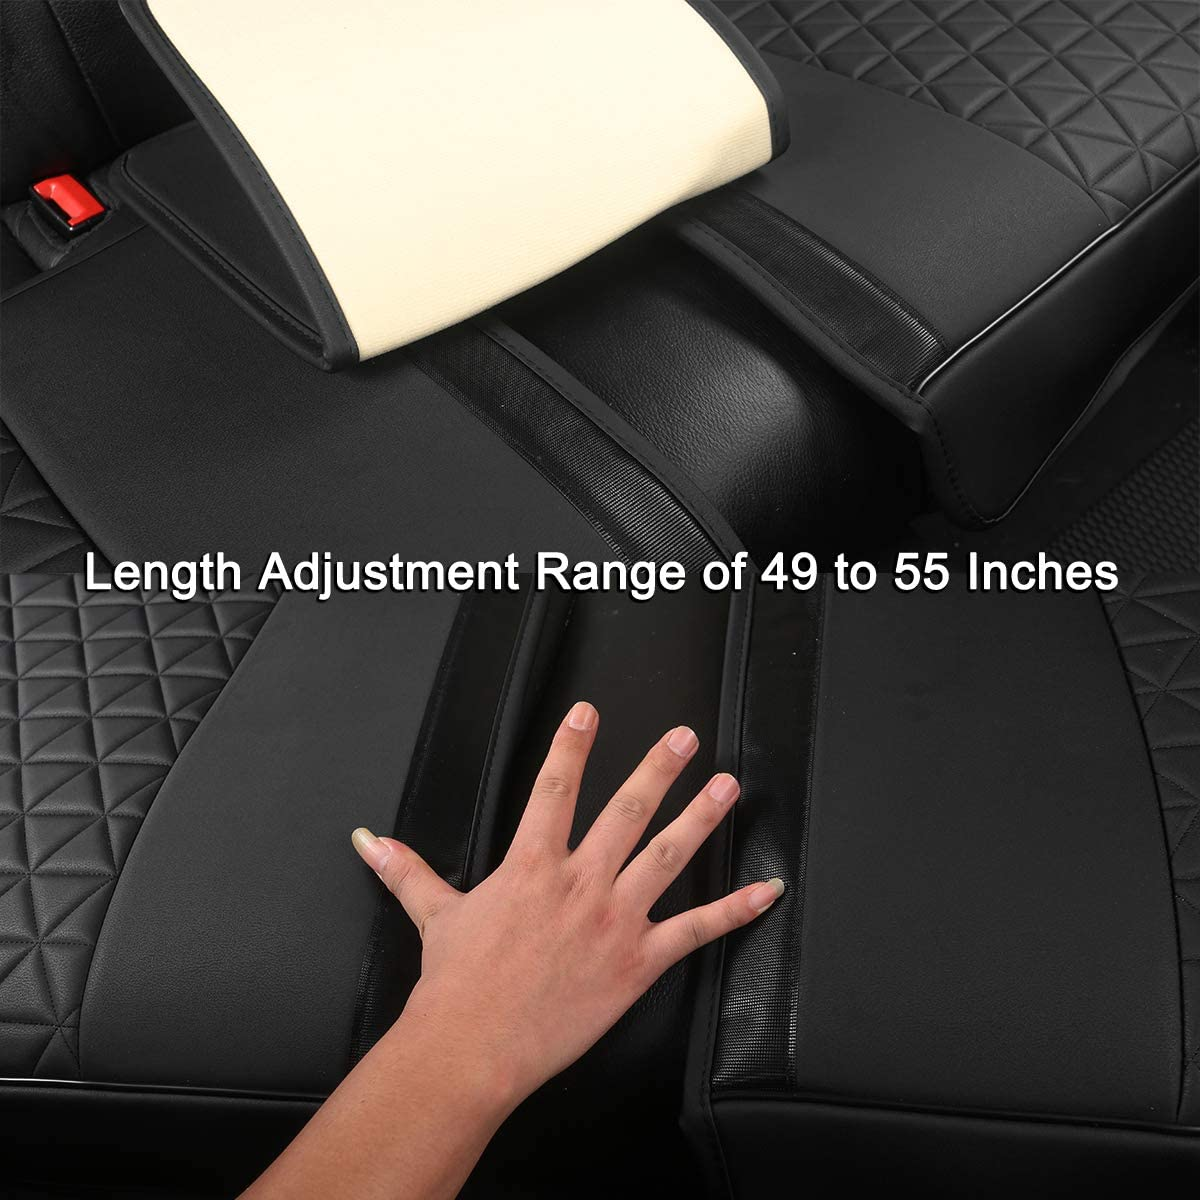 Sedan SUV Truck Back Seat Protector Fits 90/% Vehicles 49-55 for Seat Bottom Only,Triangle Quilting Design,Beige Black Panther Luxury PU Leather Rear Car Seat Cover Adjustable Length